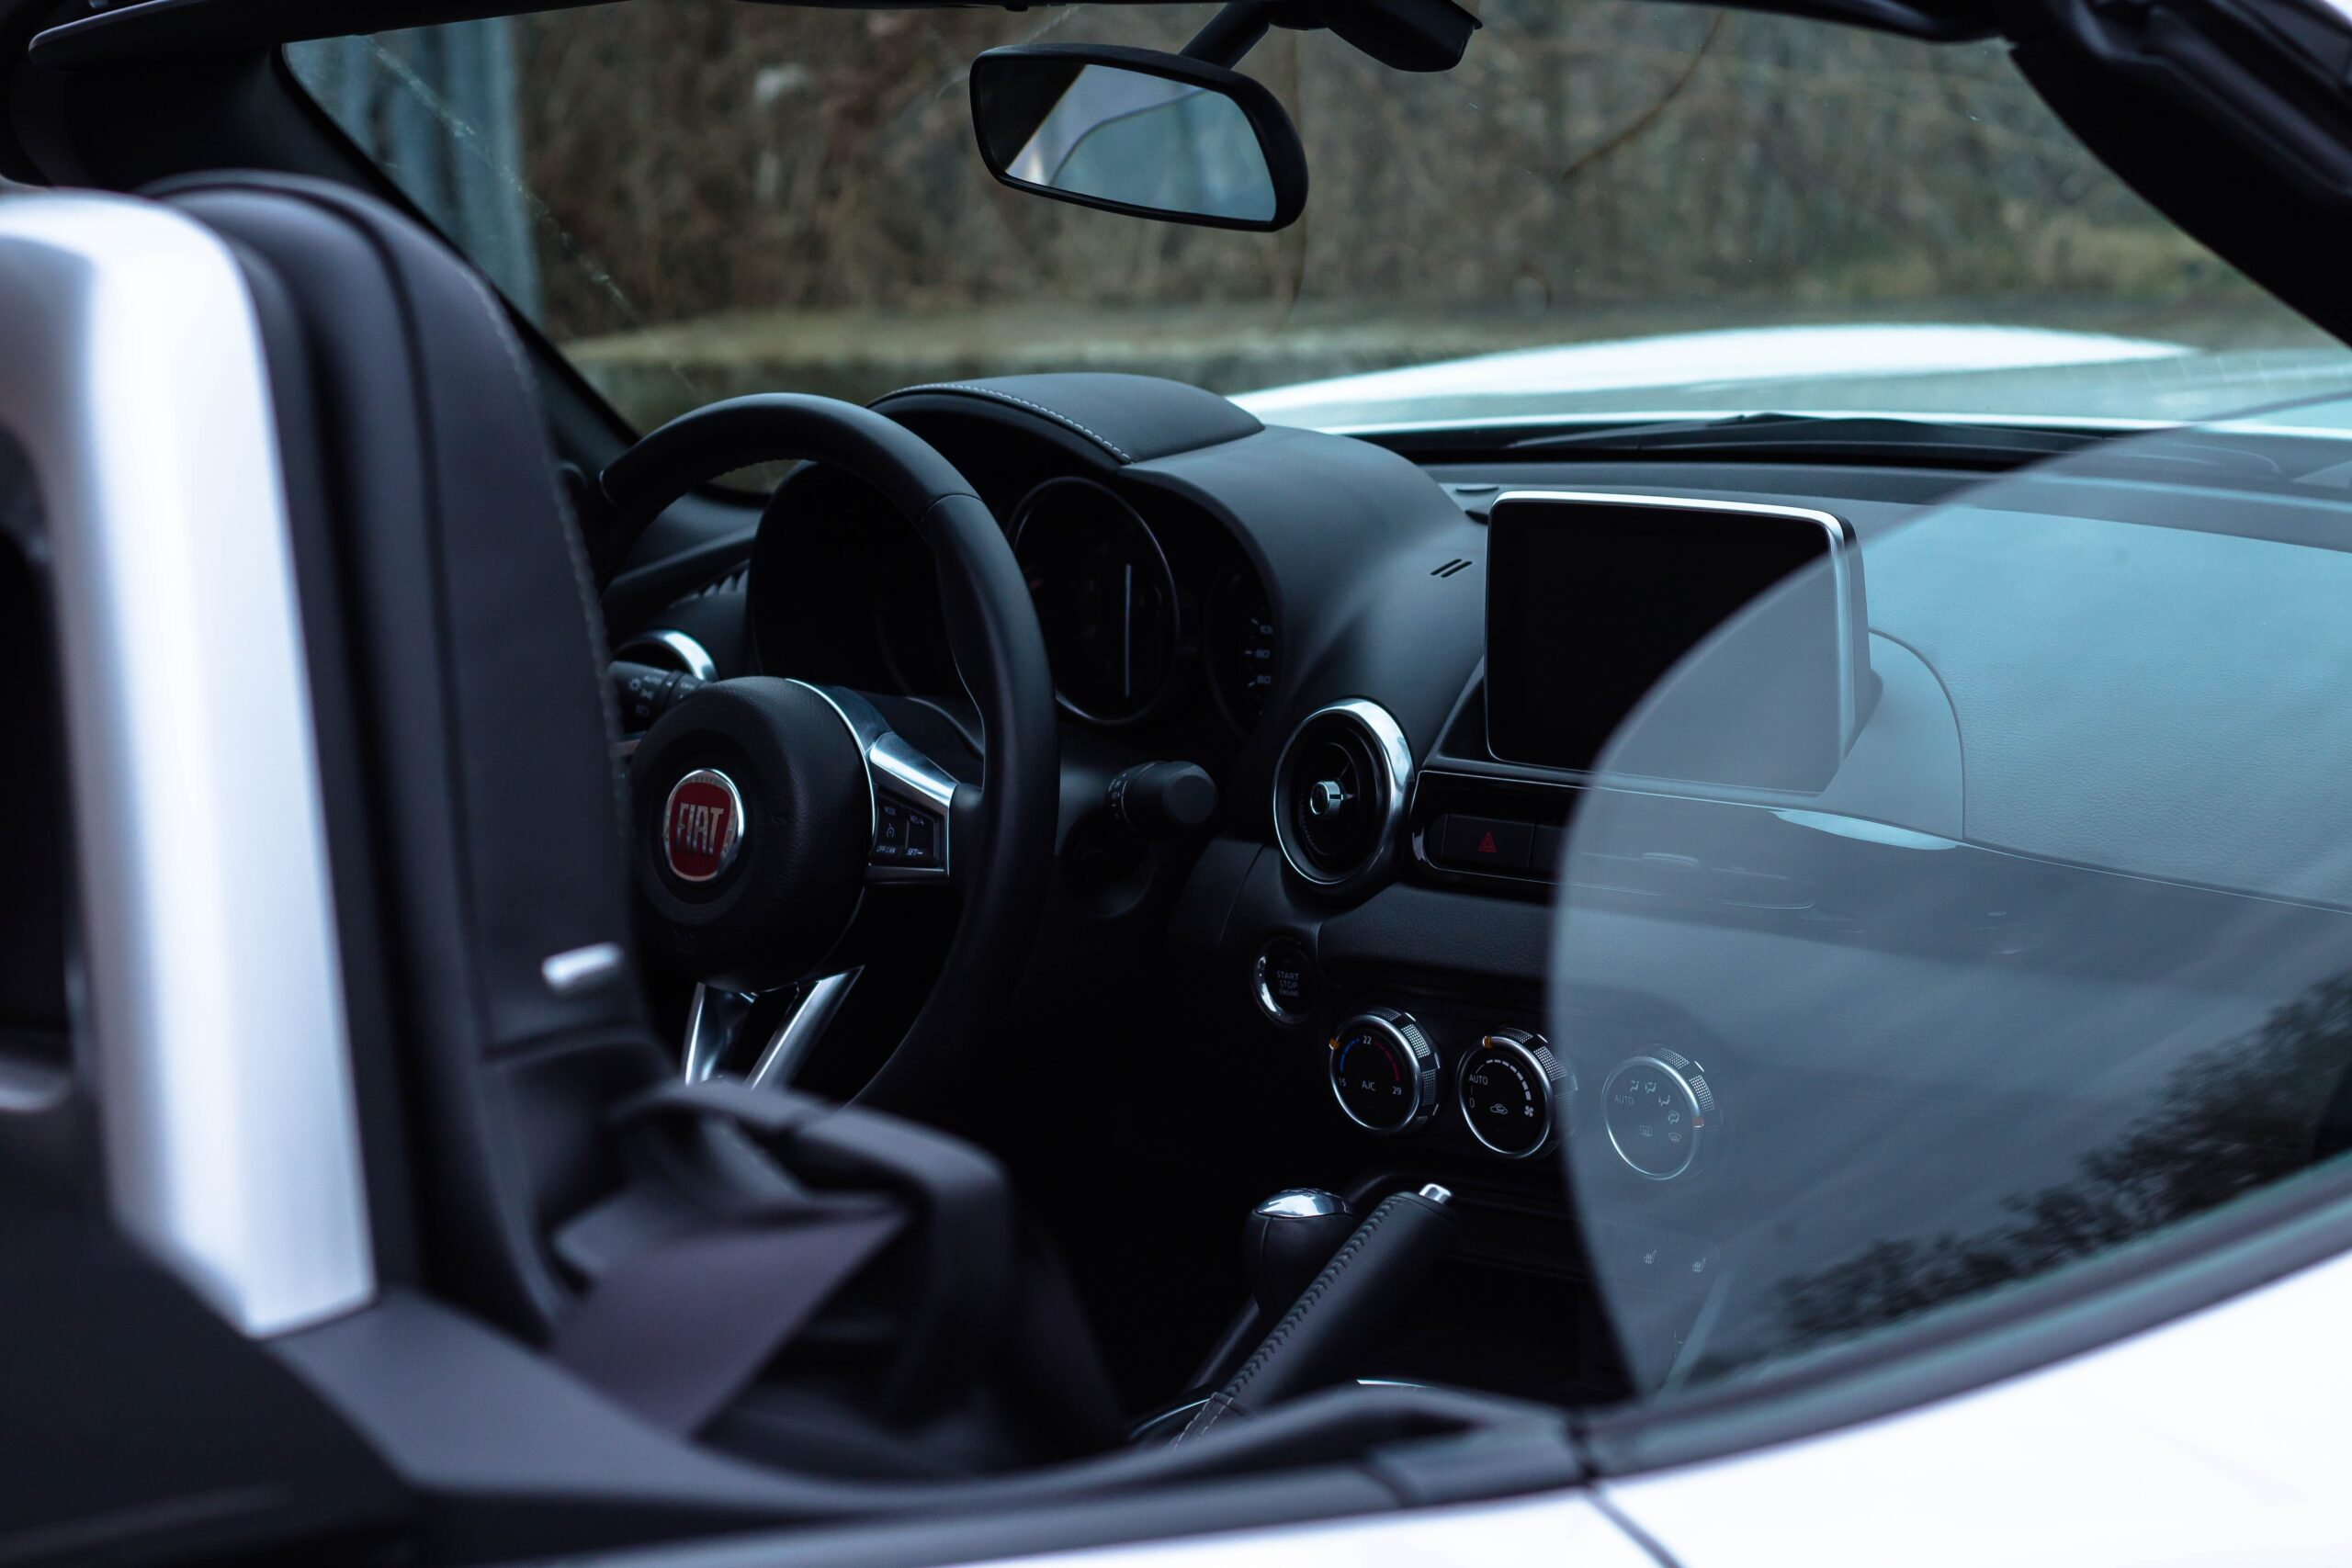 a shot of a car interior looking through the window.